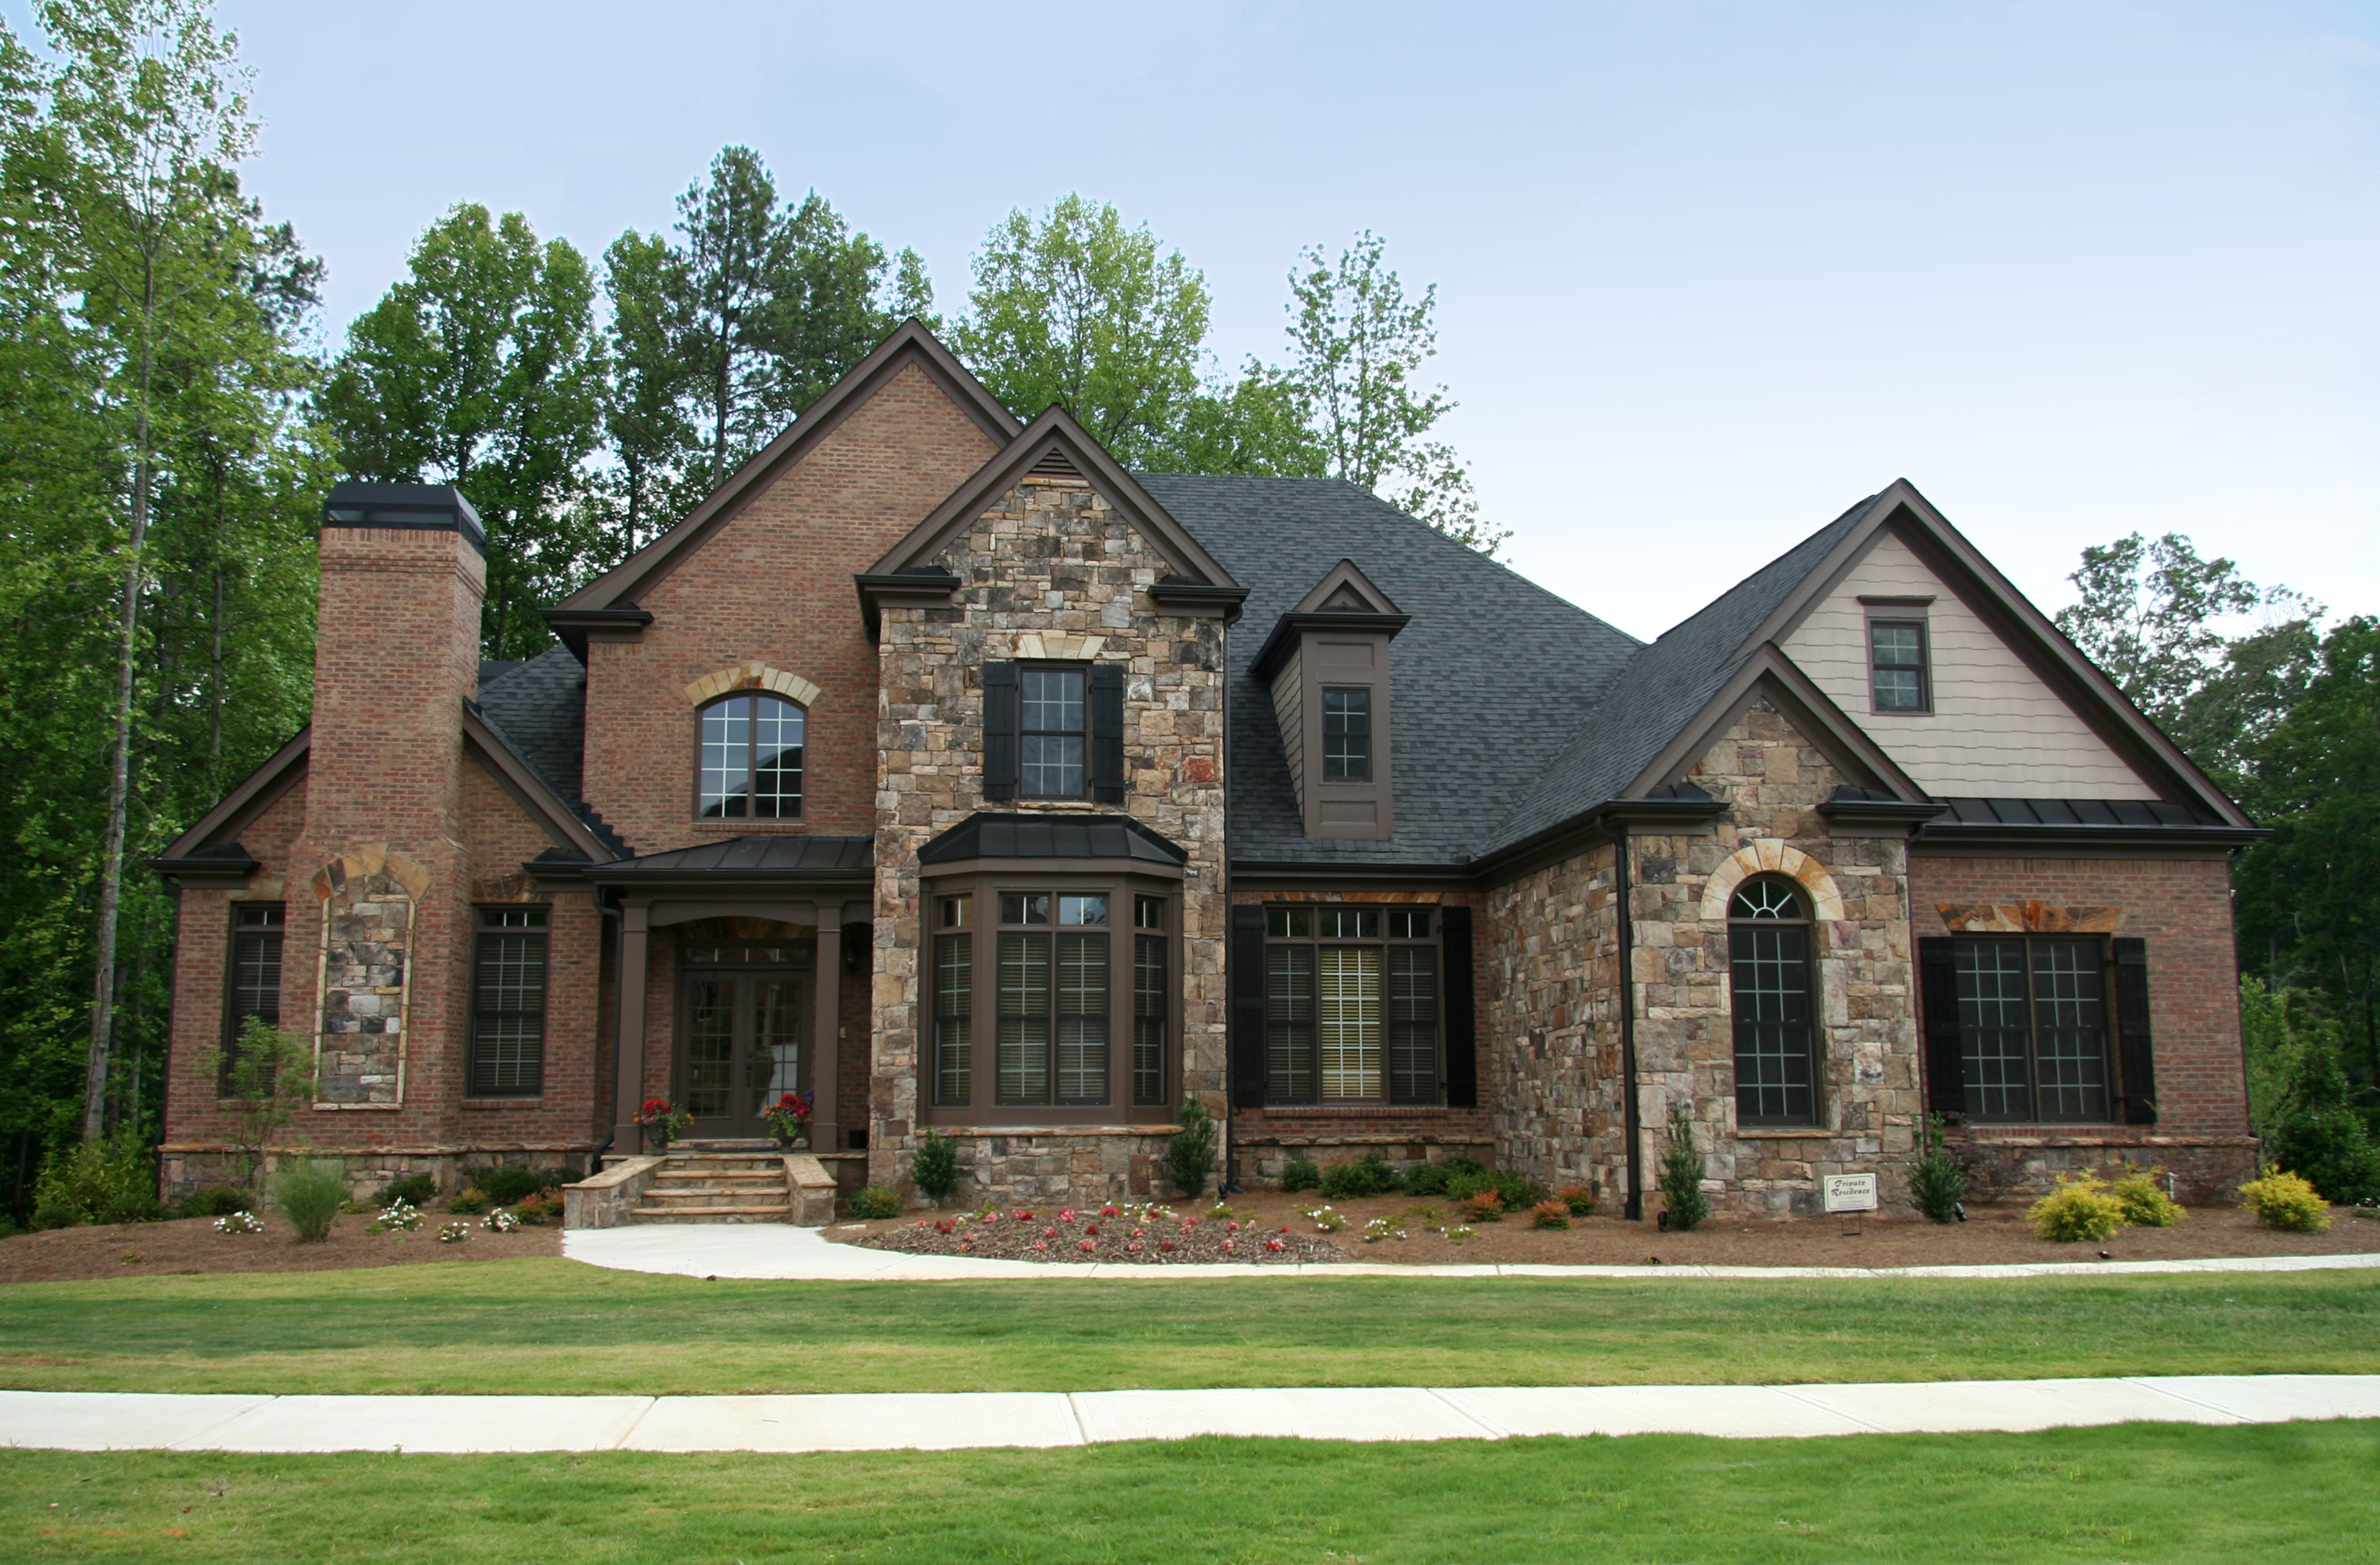 Tuscaloosa roofing solutions tuscaloosa alabama al for All american exterior solutions